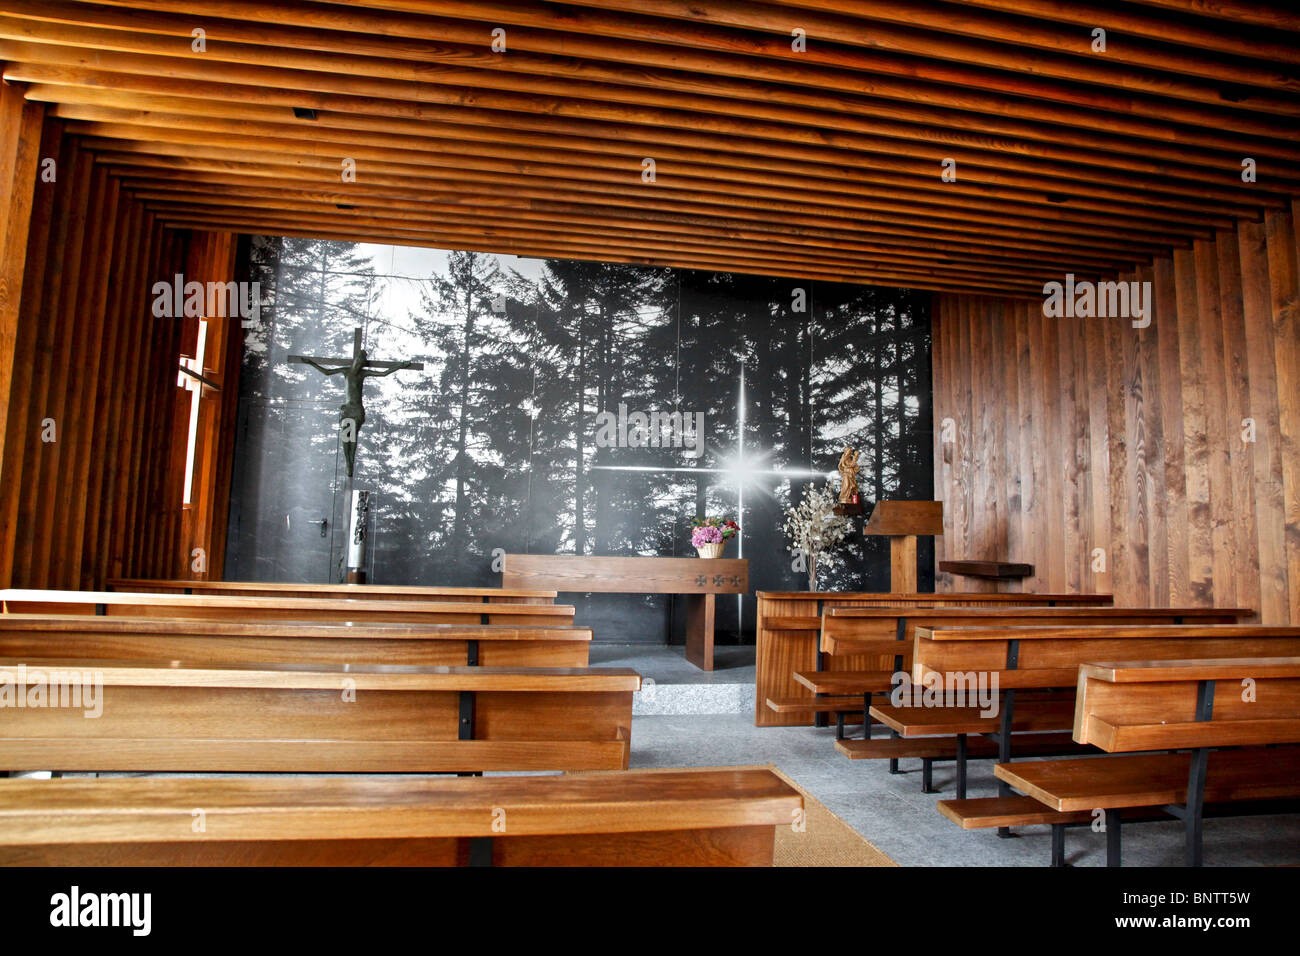 Inside A Modern Catholic Church In Swiss Mountains Stock